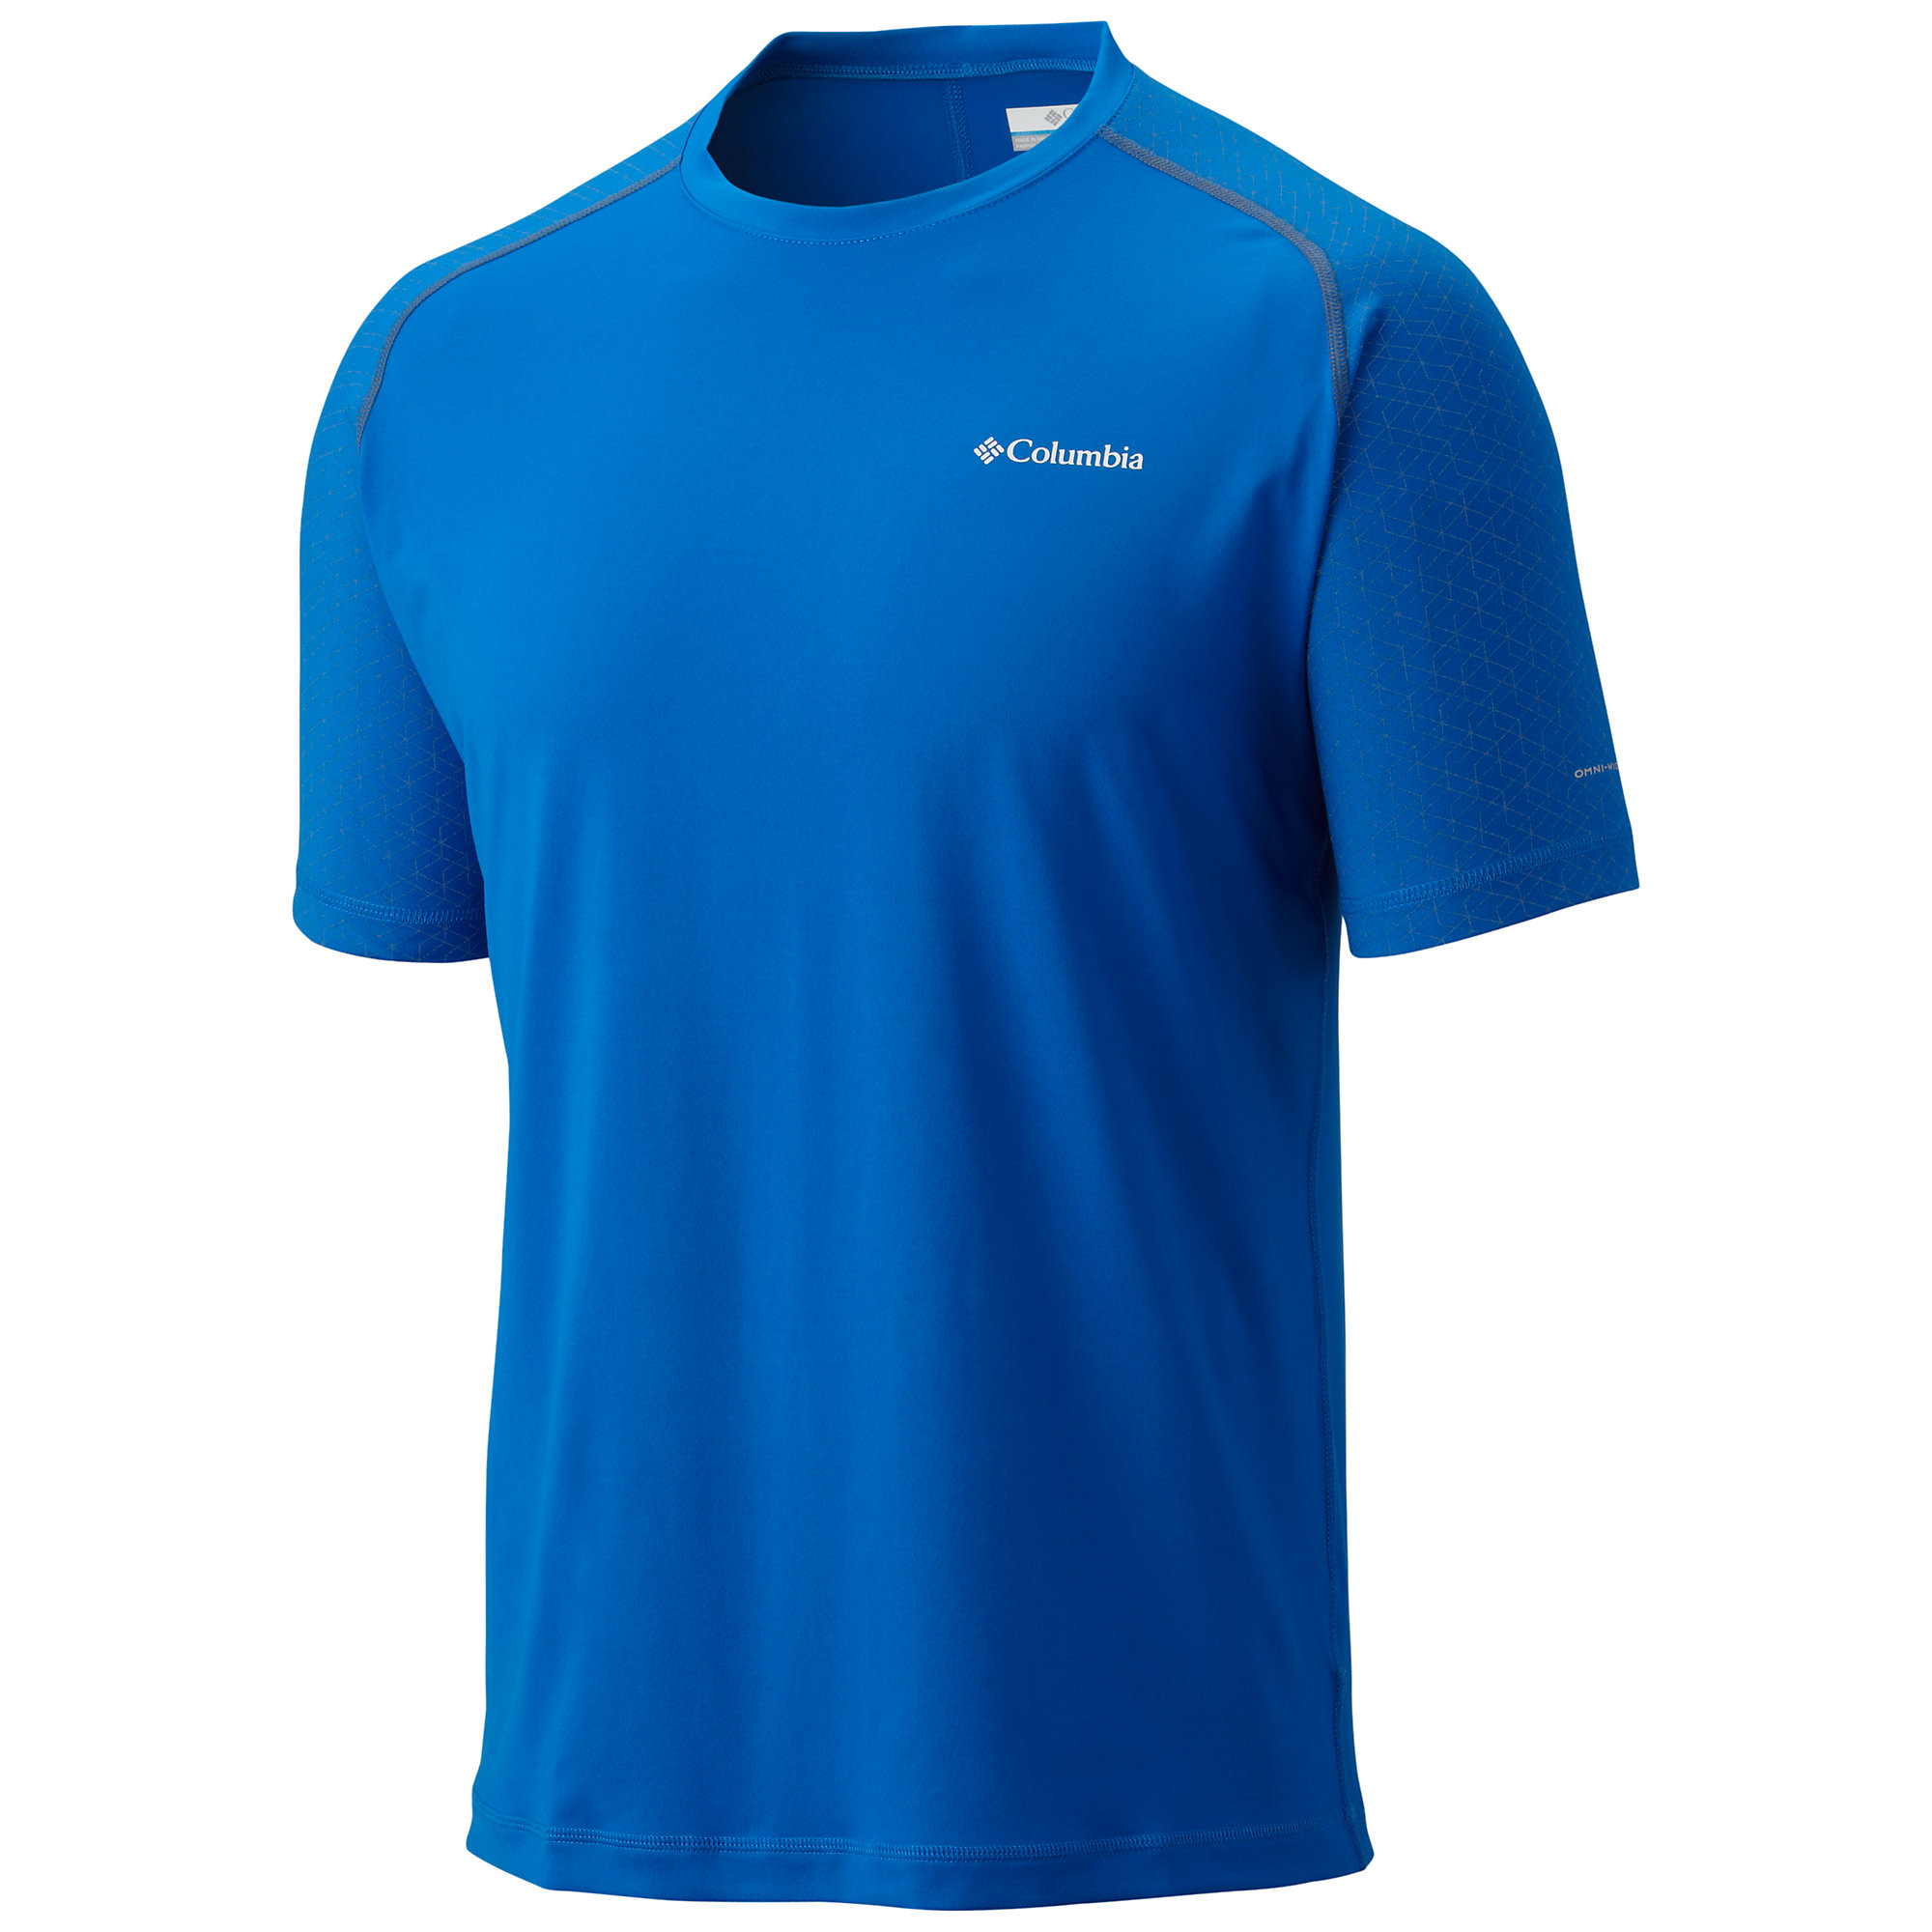 photo: Columbia Men's Trail Flash Short Sleeve Shirt